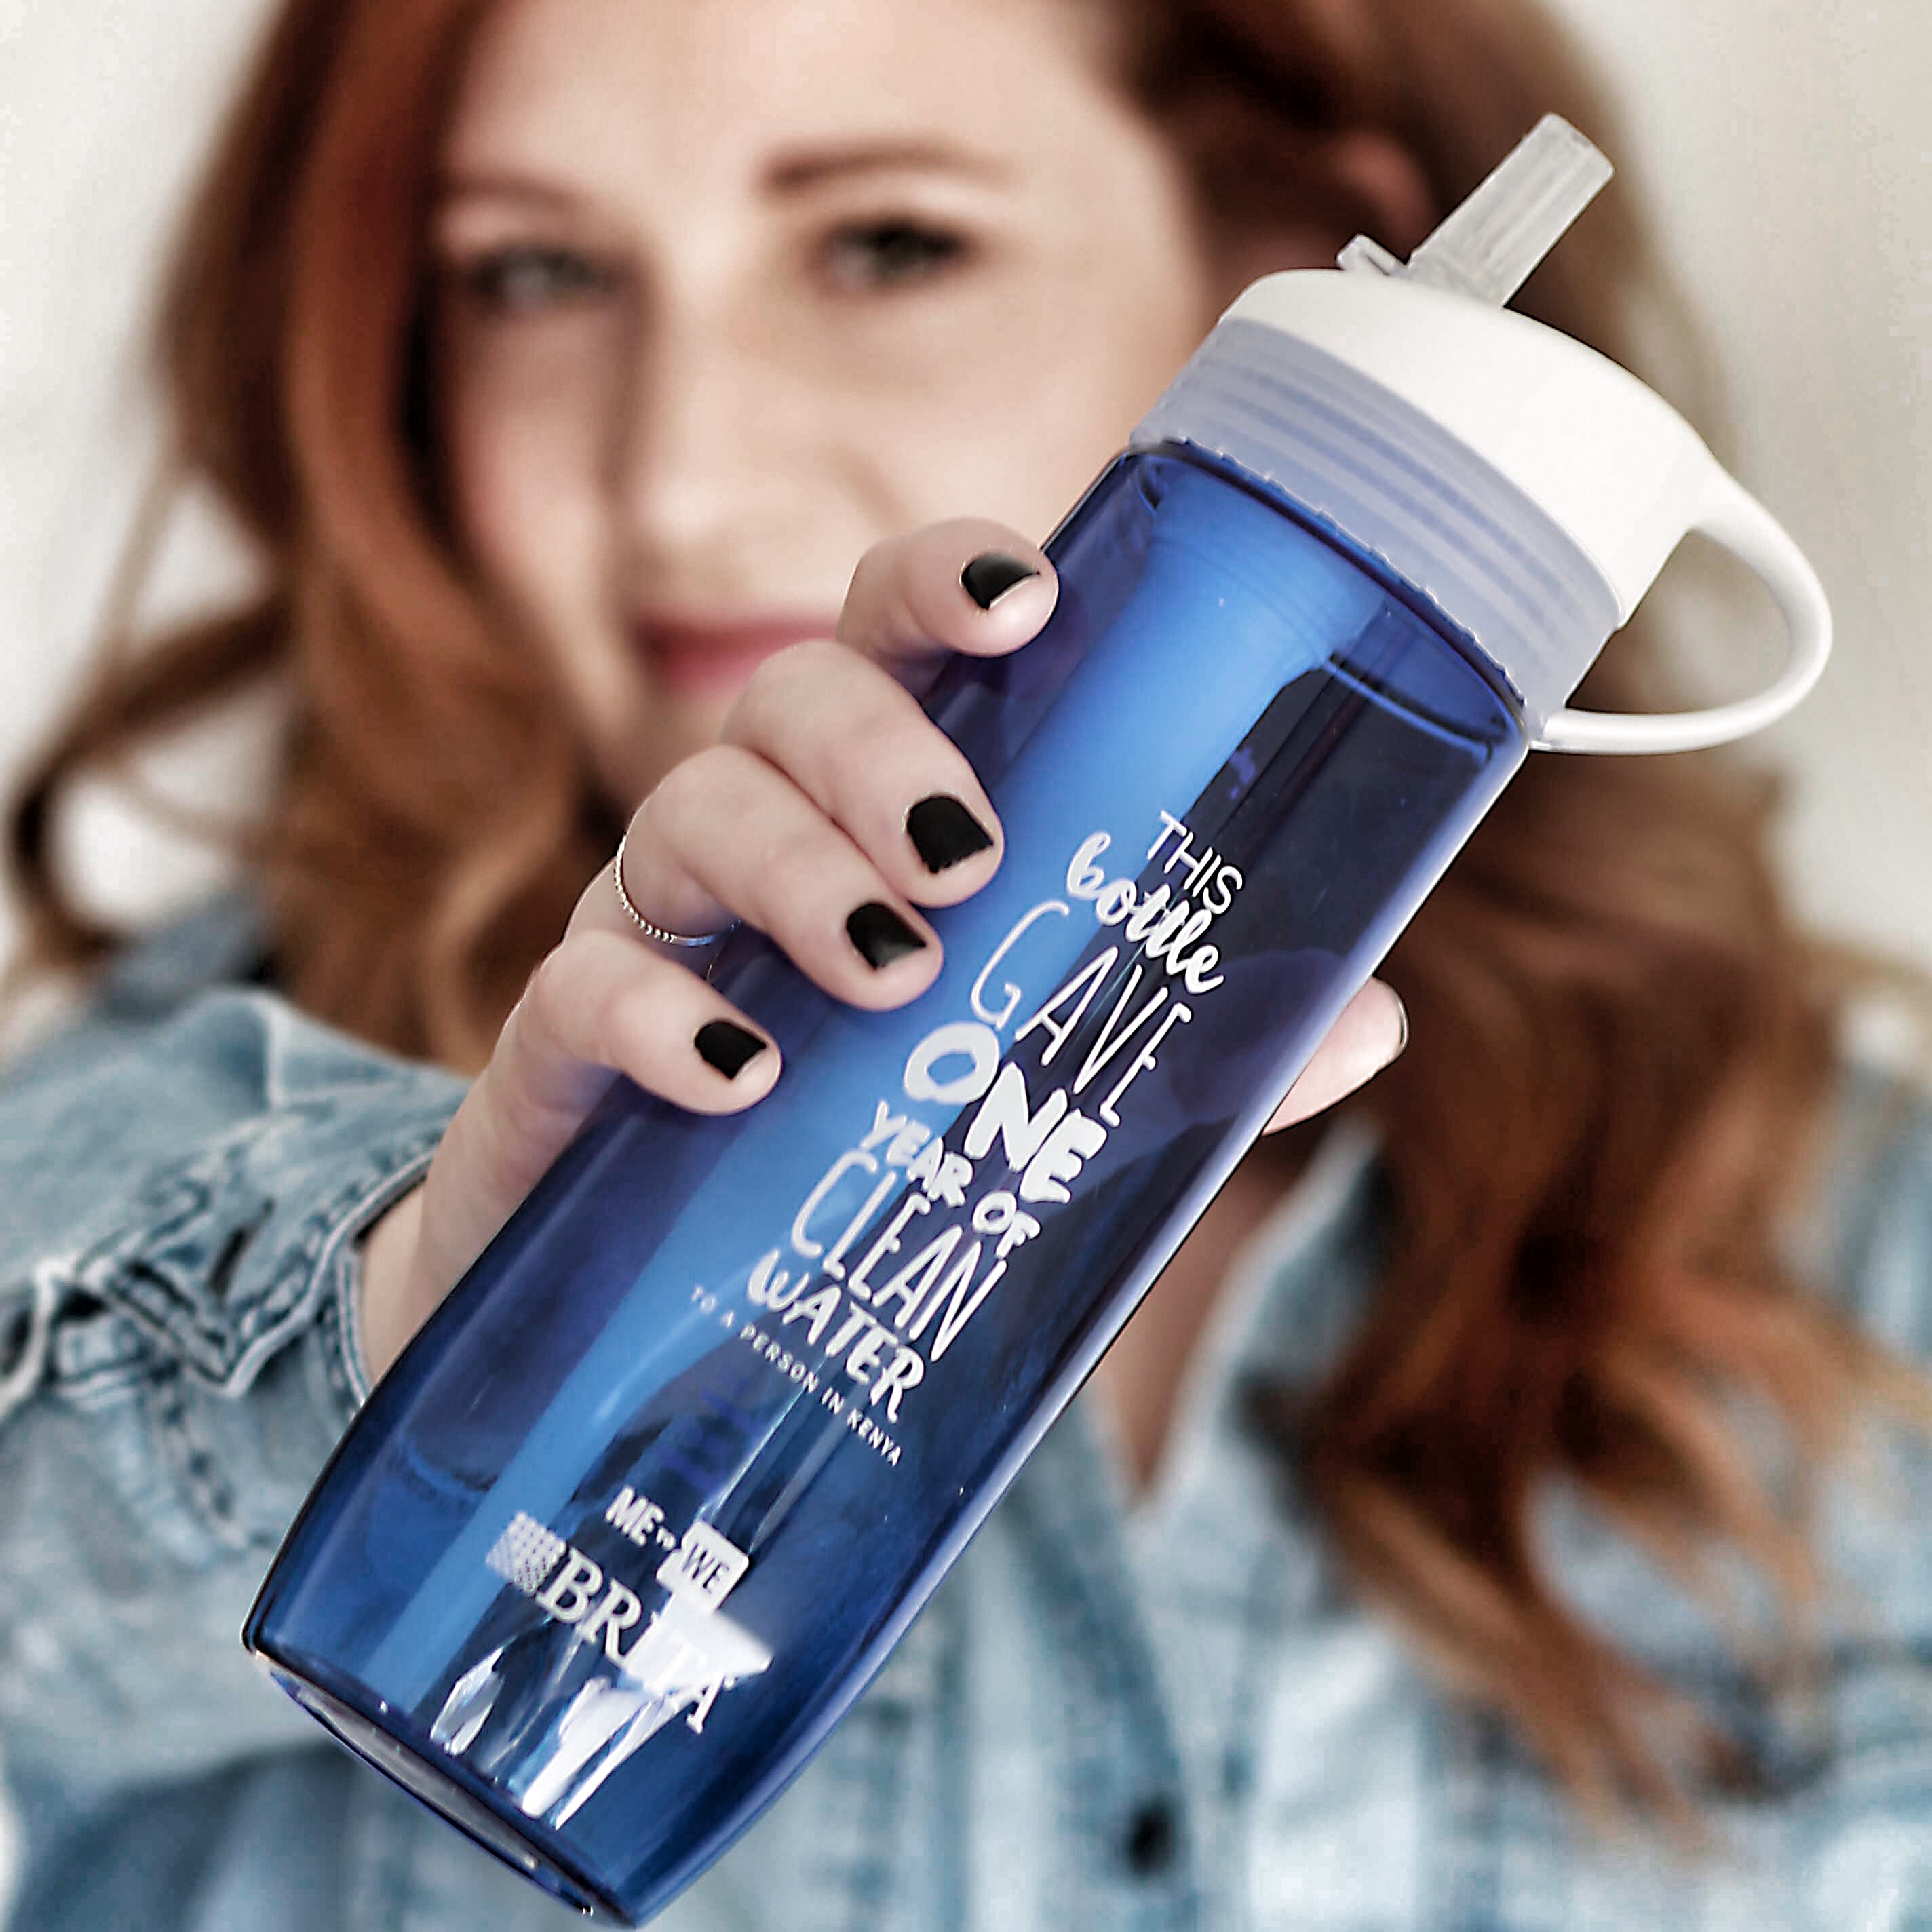 Brita Statement water bottle